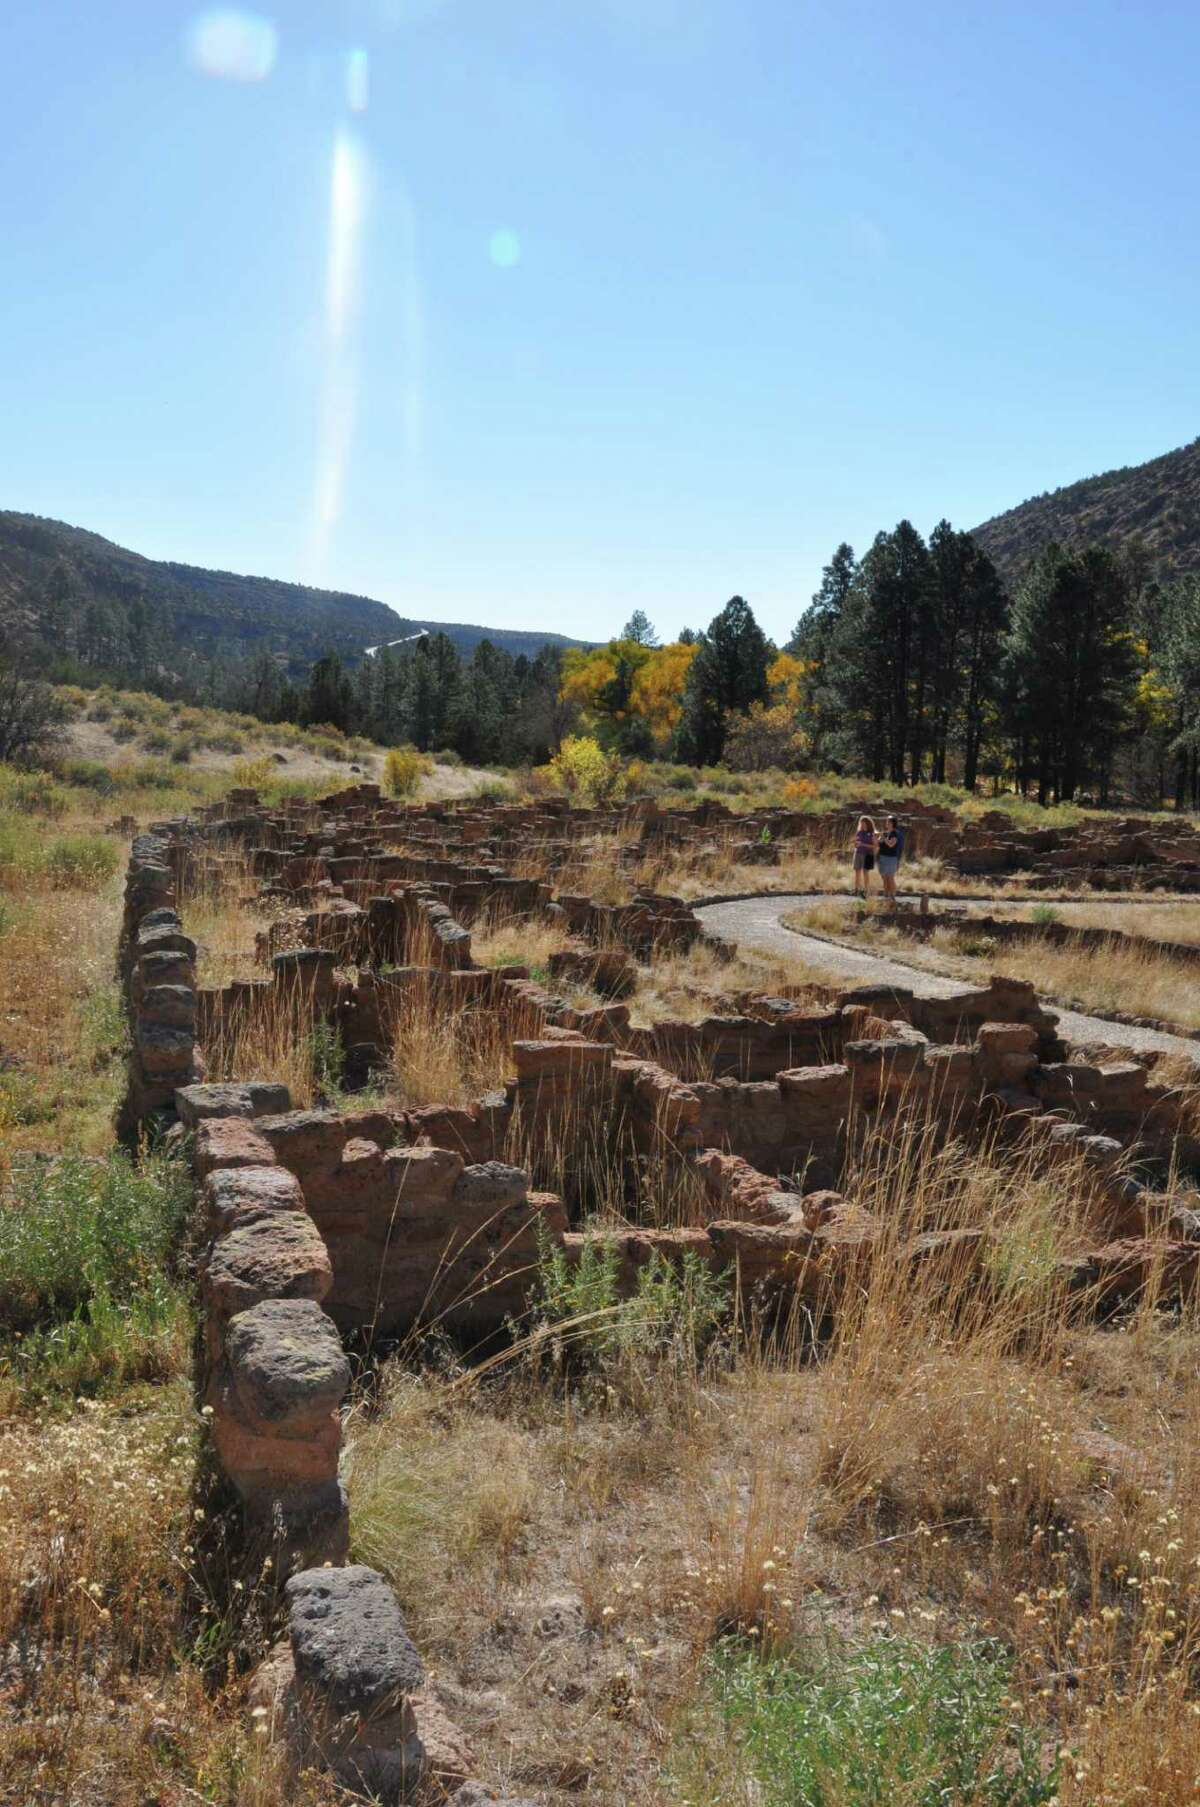 Masonry walls outline the dwellings of the Anasazi at Bandelier National Monument.